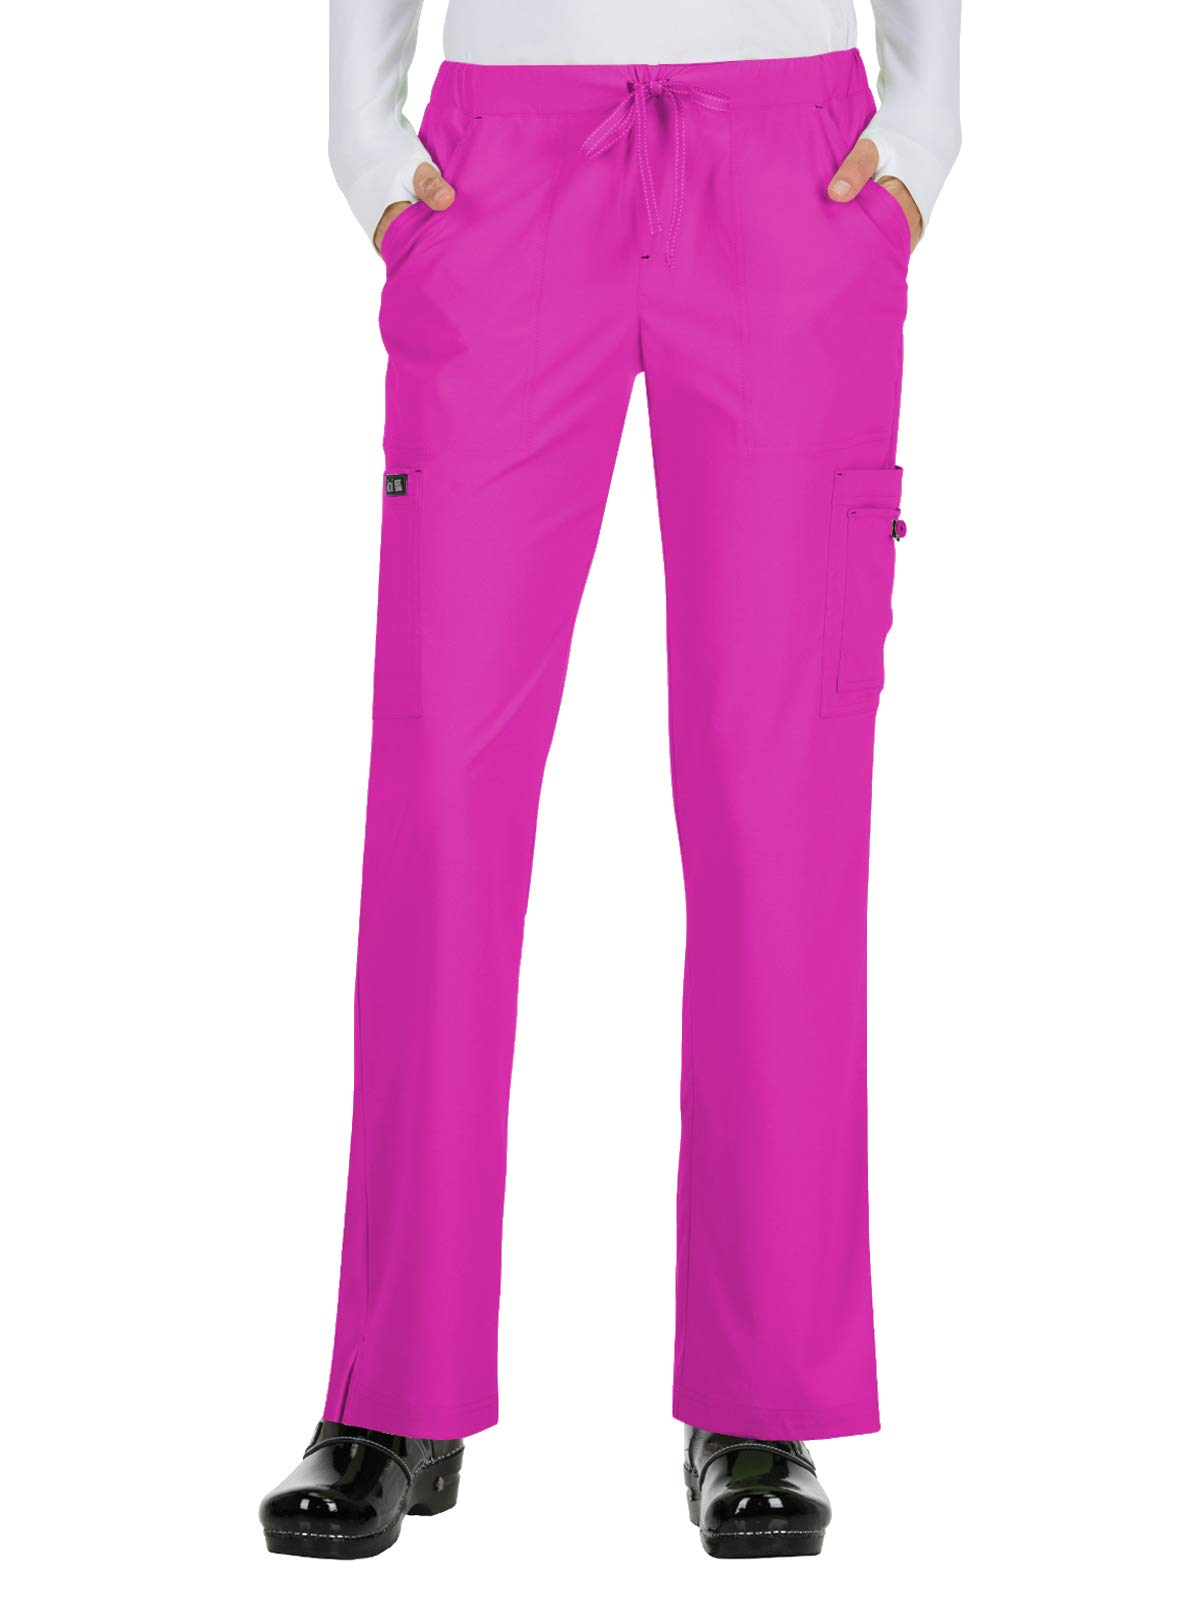 KOI Basics Low-Rise Waistband Lightweight & Comfortable Holly Scrub Pant for Women